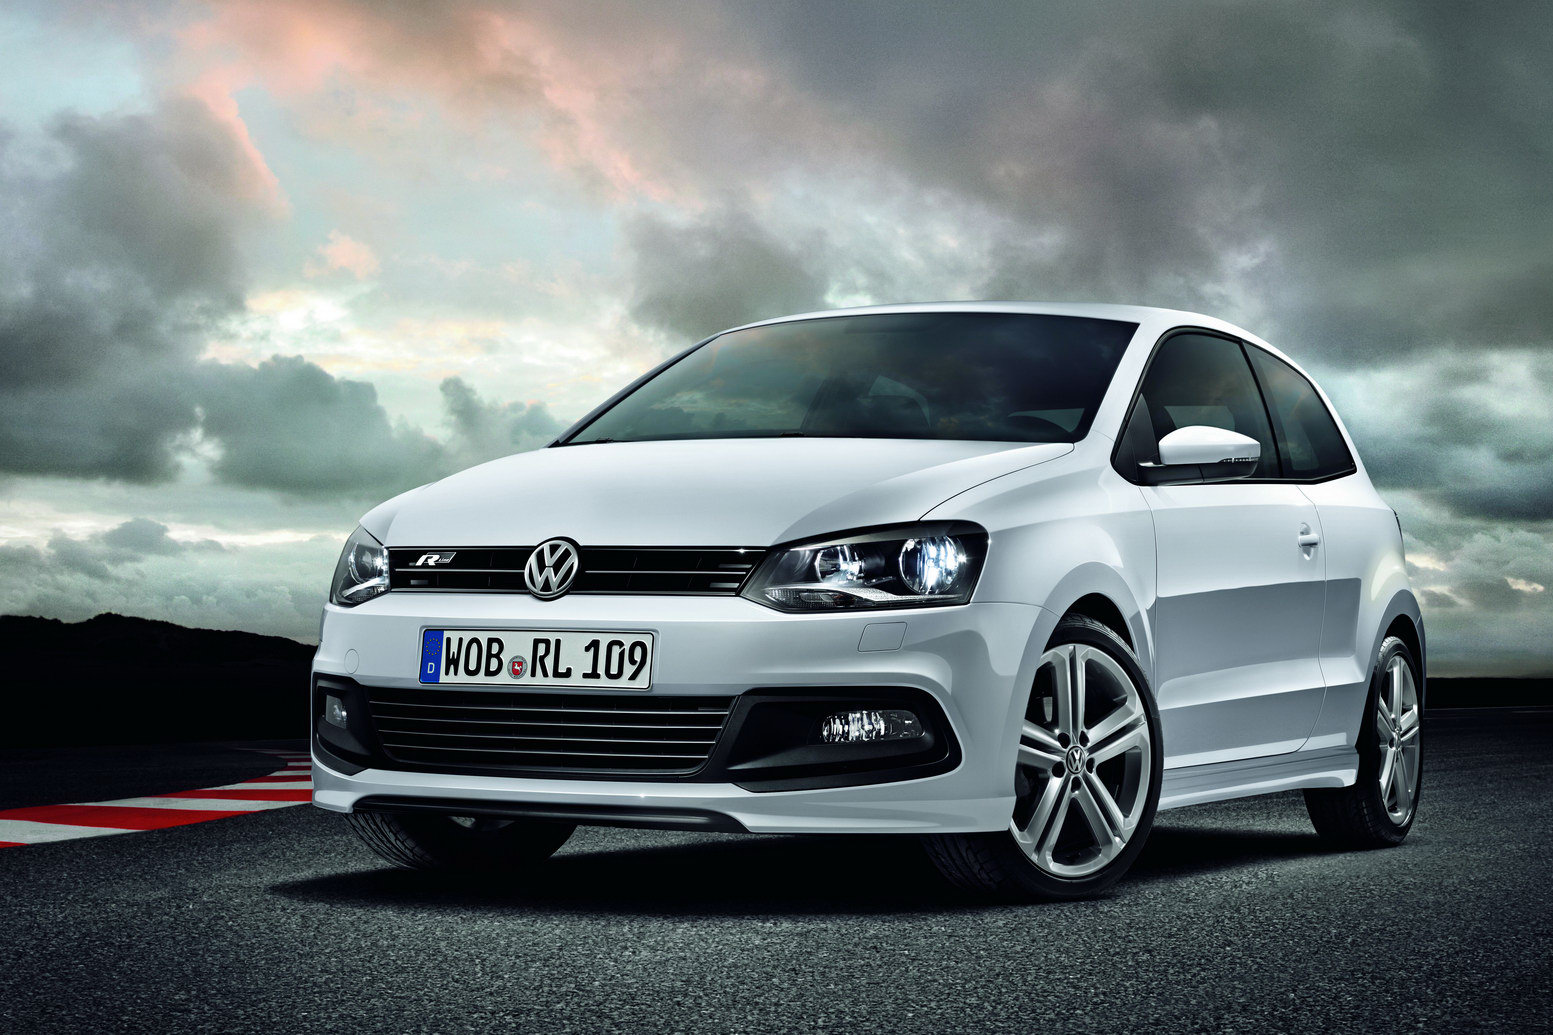 New Volkswagen Polo R Line and Passat Exclusive Edition Loads of renovation by Volkswagen